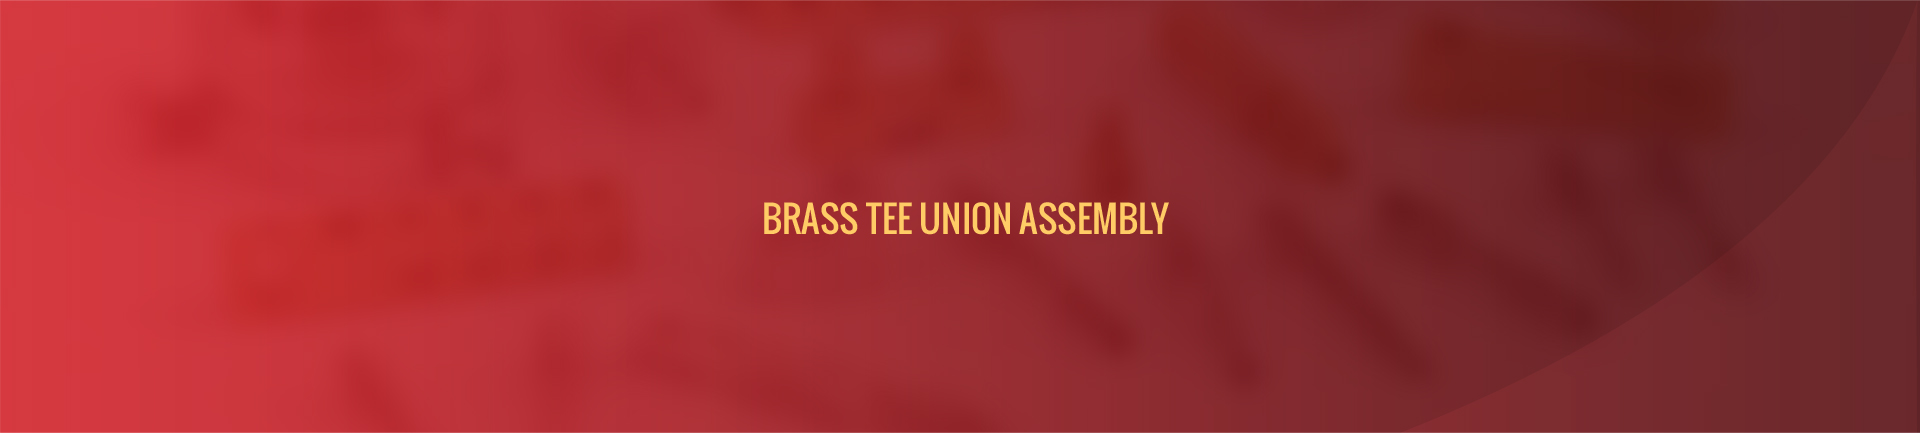 brass_tee_union_assembly-banner